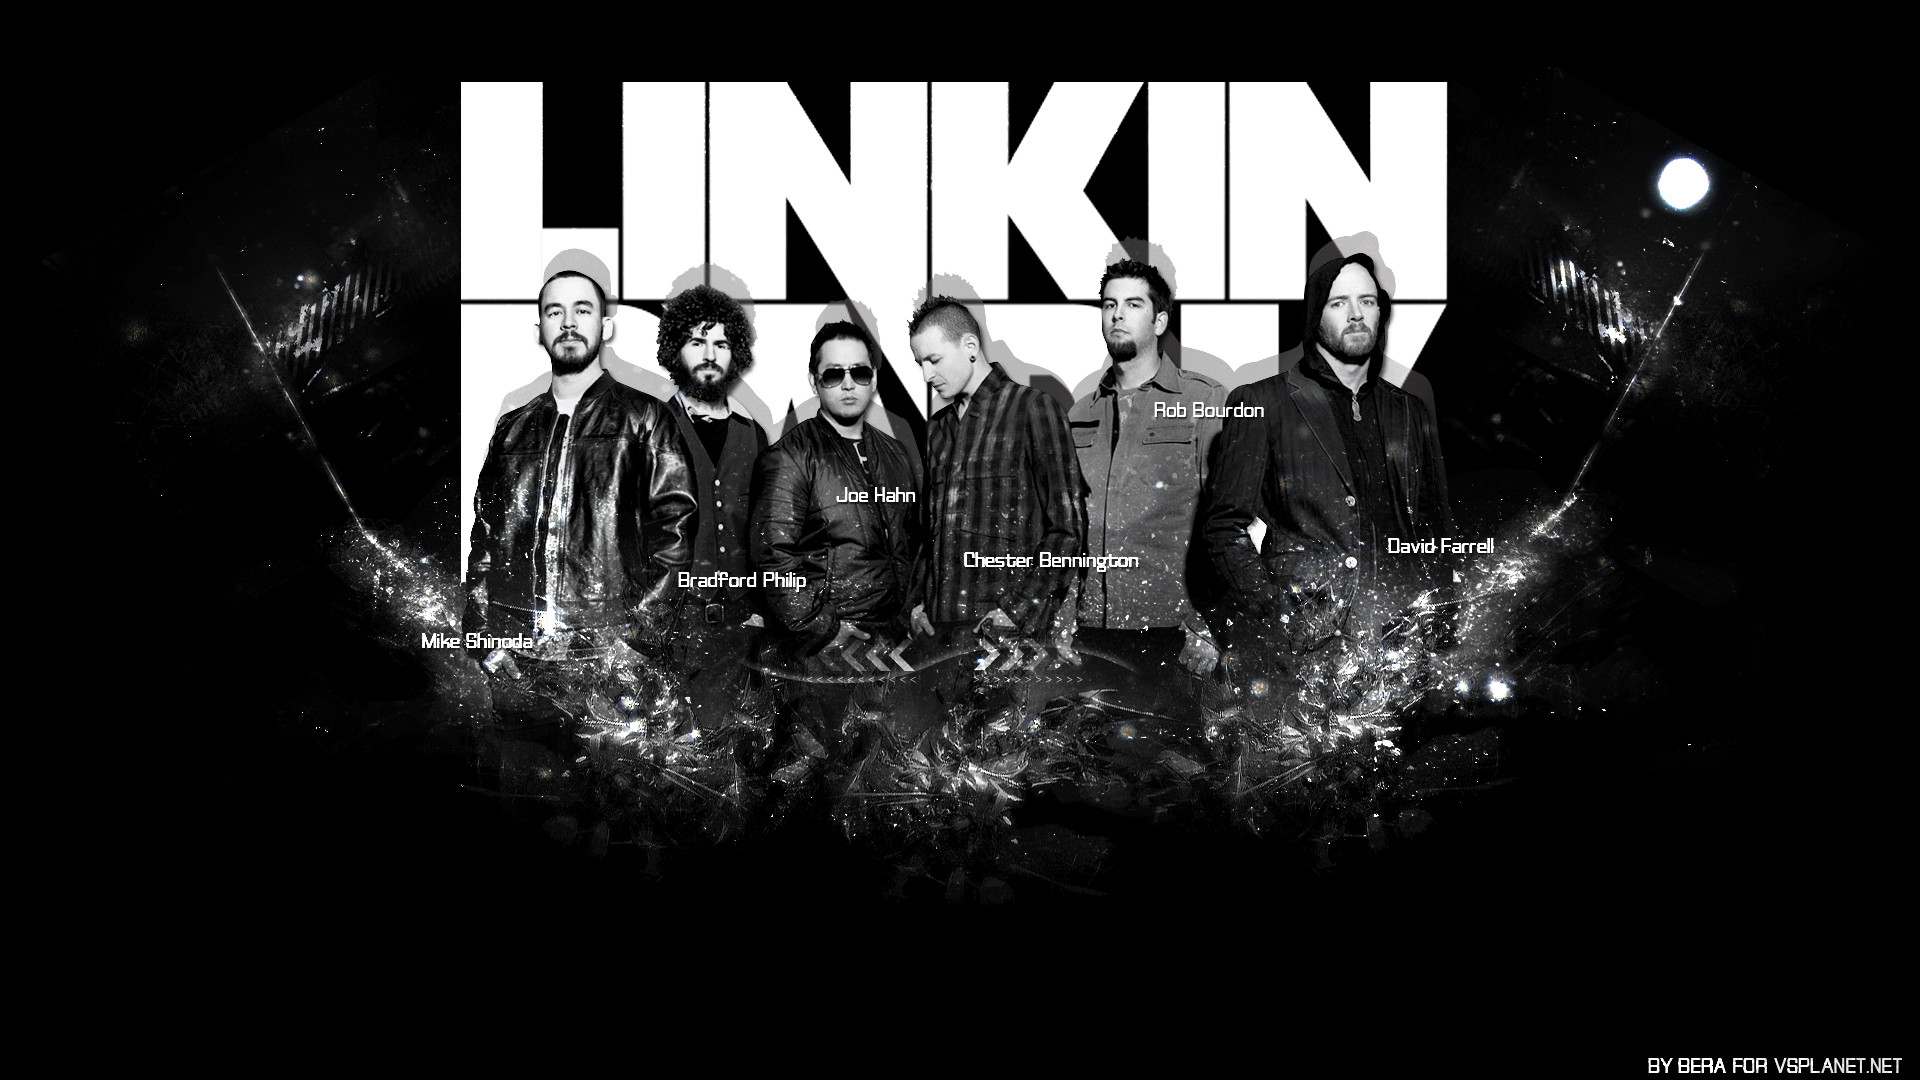 Linkin Park Wallpaper Hd 2018 69 Images